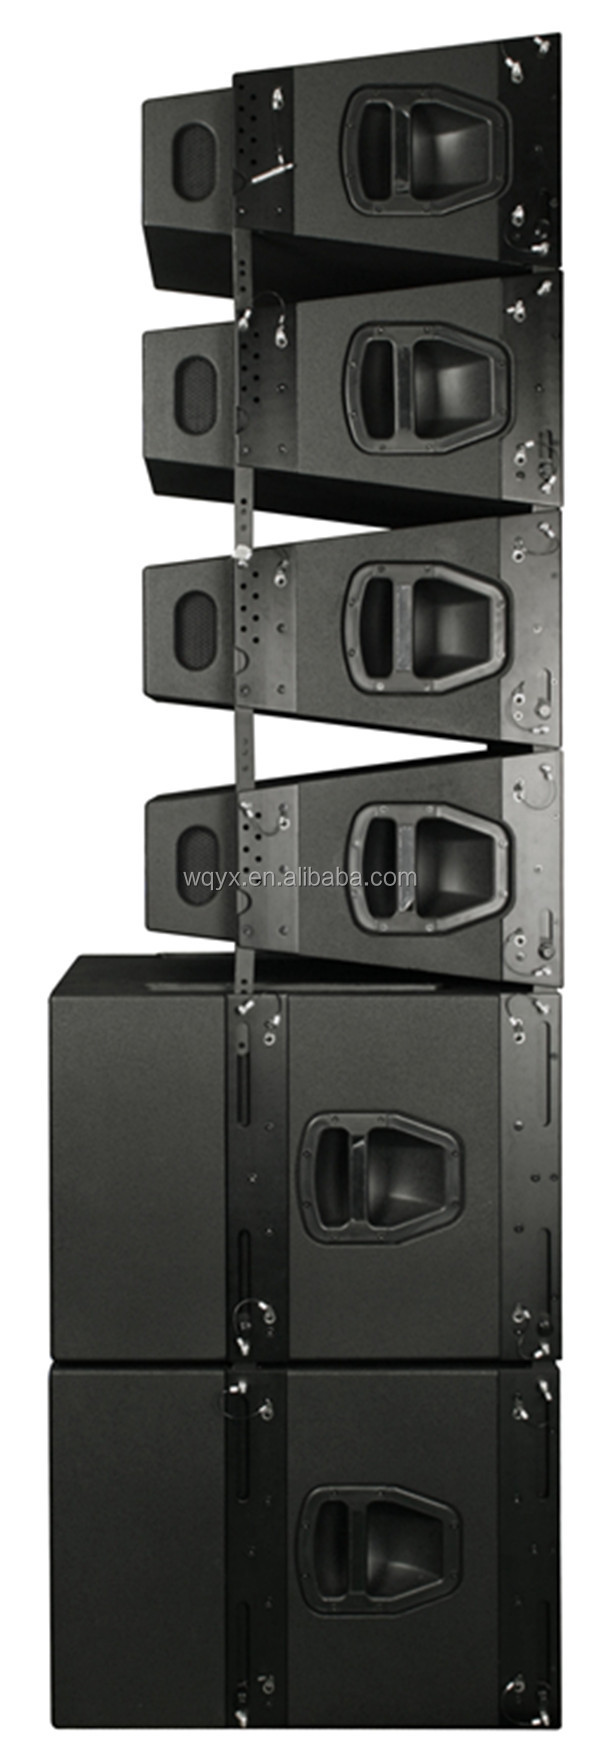 Professional dj sound system Pro line array speaker made in China